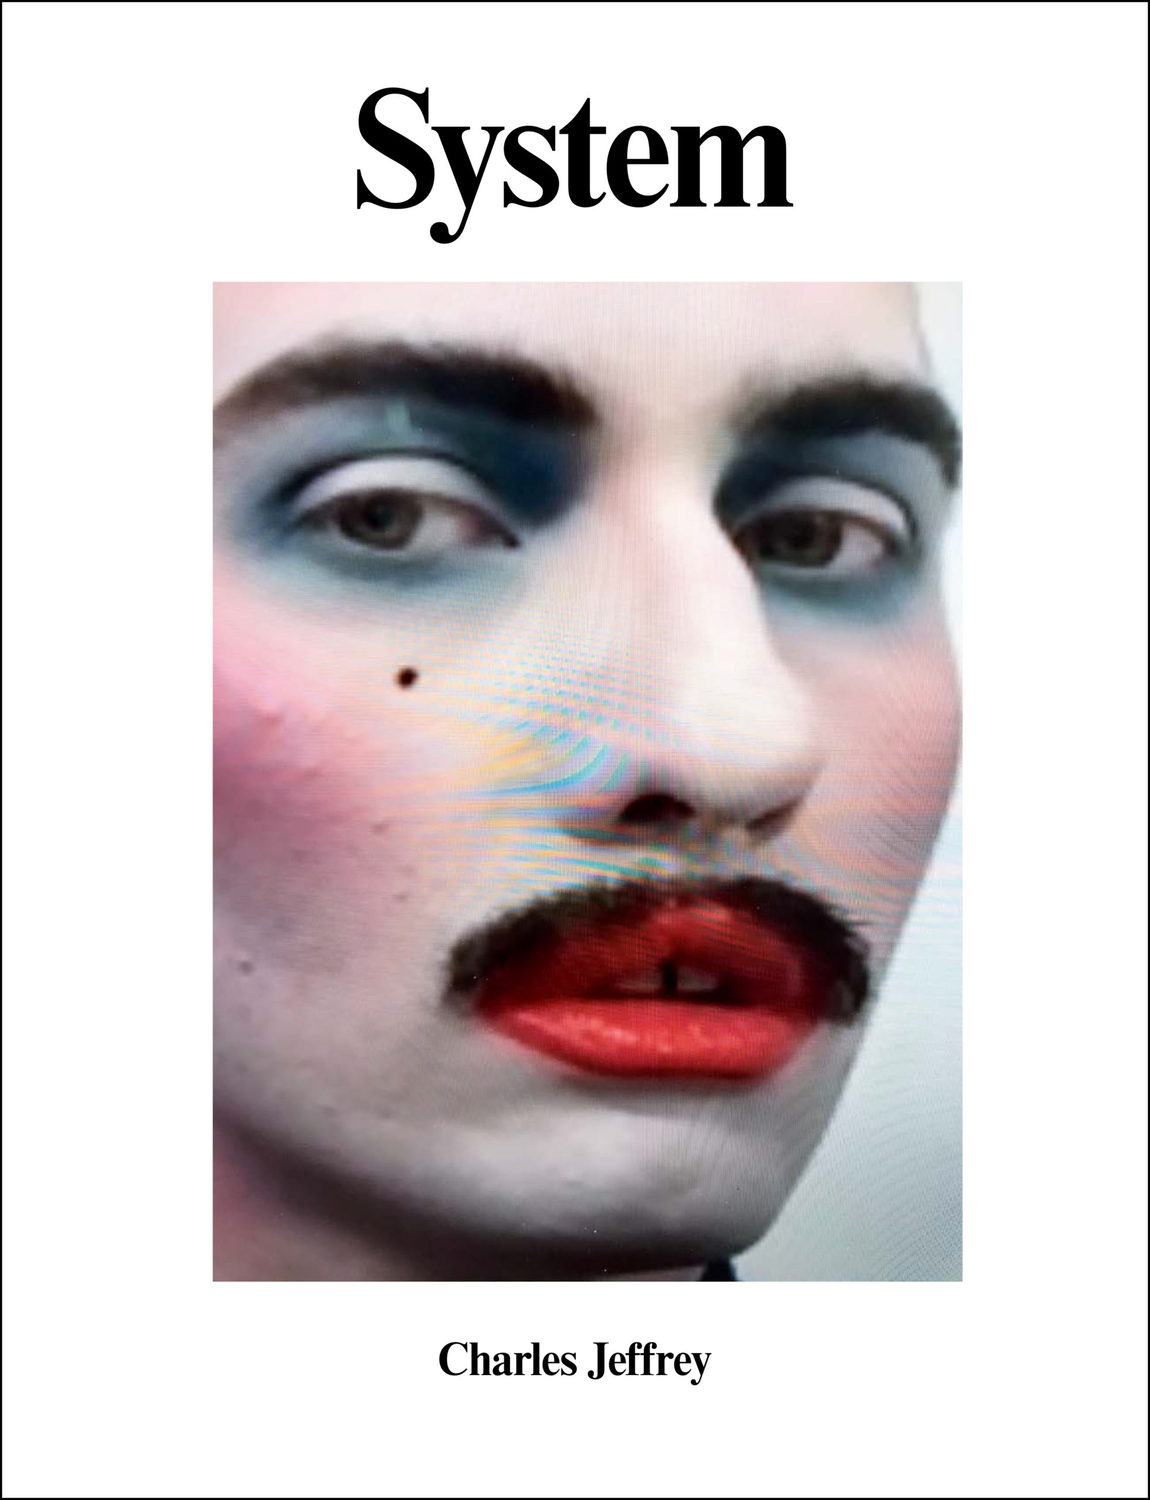 SYSTEM15-COVER-Charles-Jeffrey-scaled.jpg